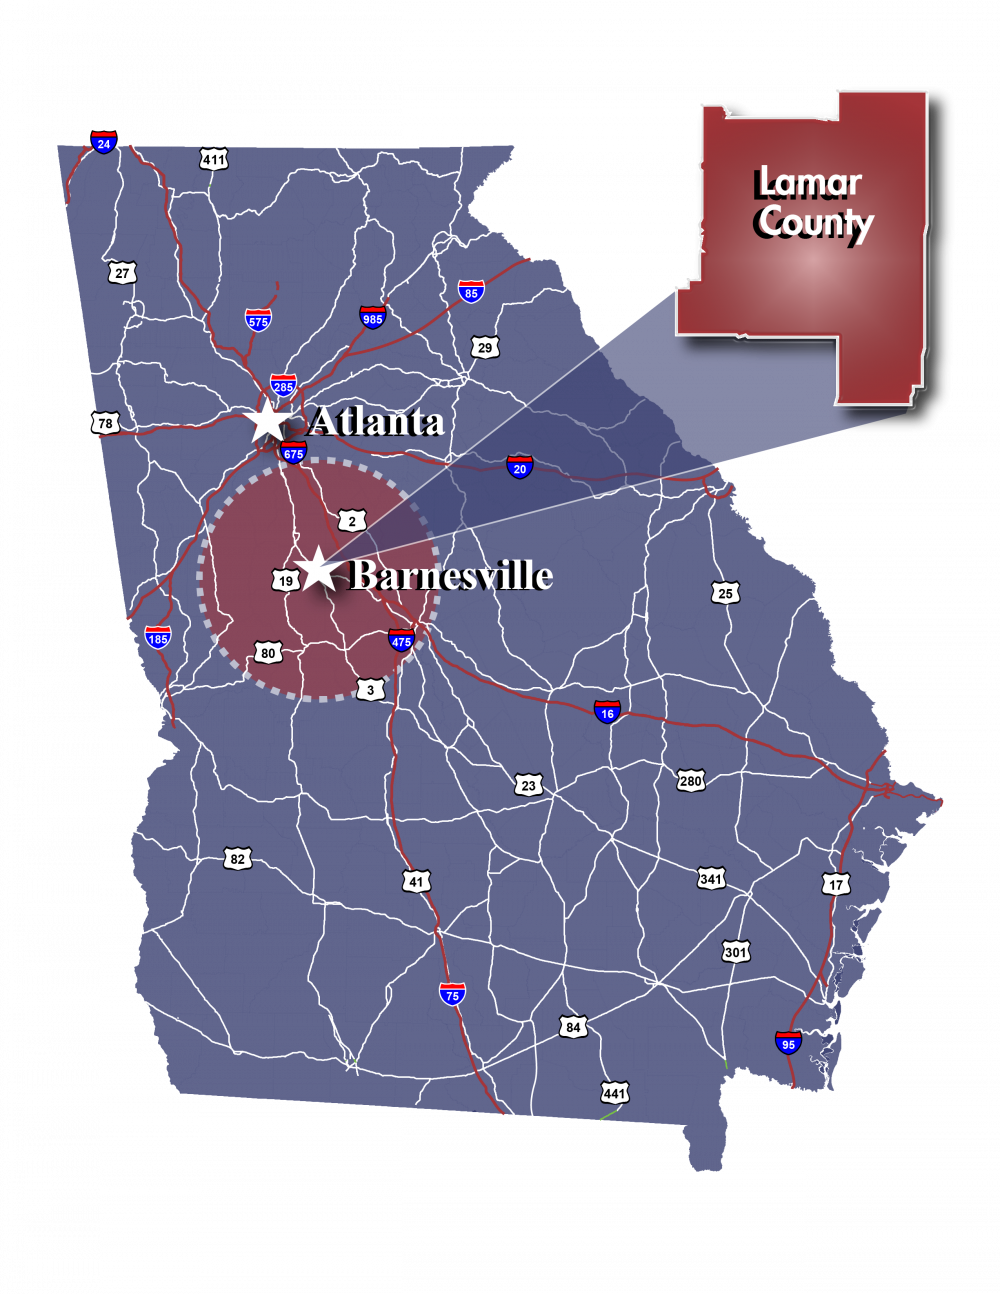 Turn Your Visit into a Location | Barnesville-Lamar County ...